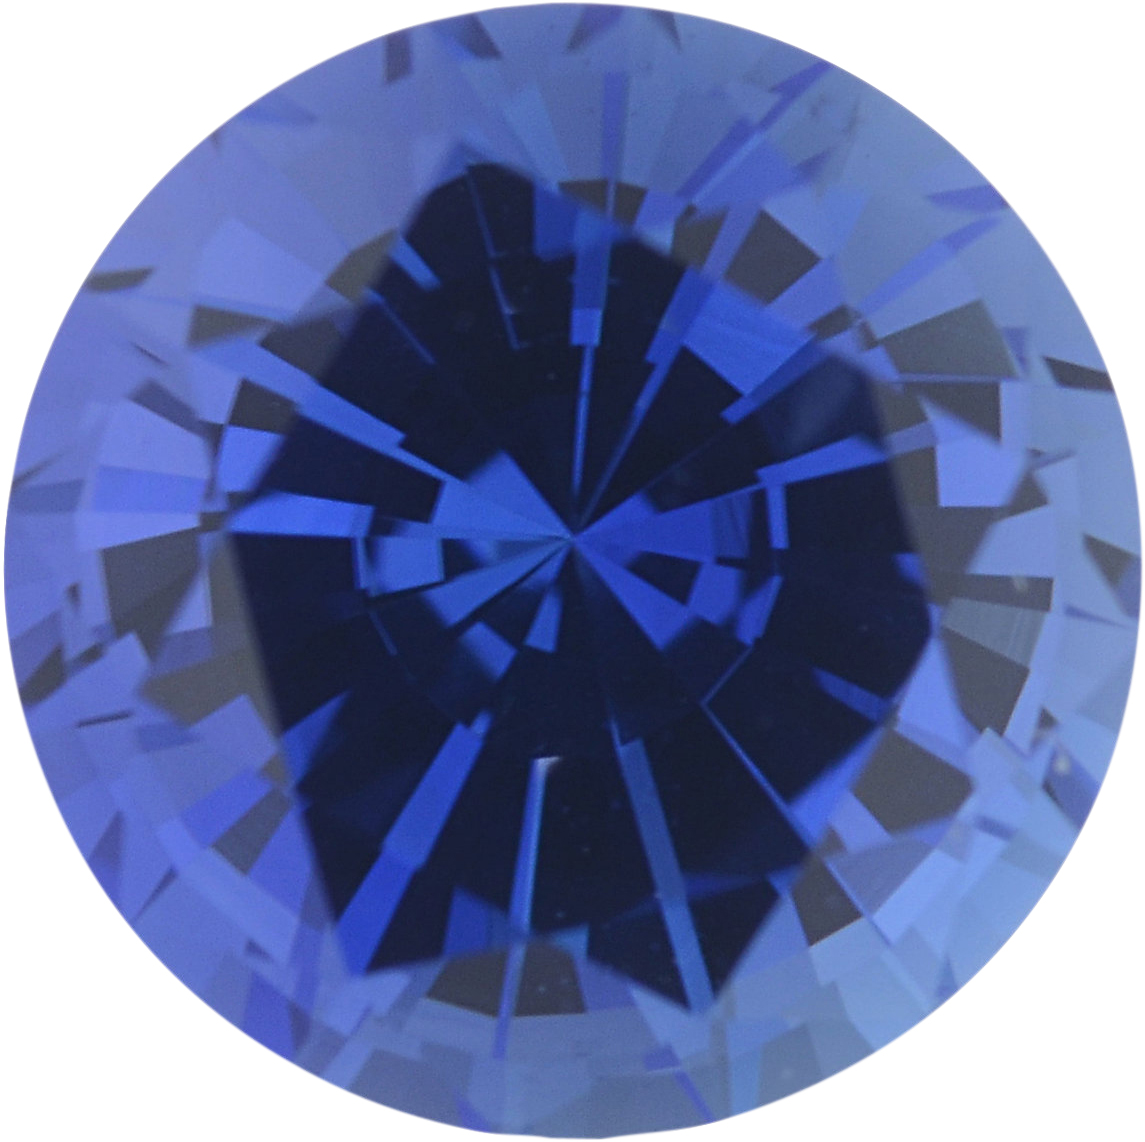 1.09 carats Blue Loose Sapphire Gemstone in Round Cut, 6 mm